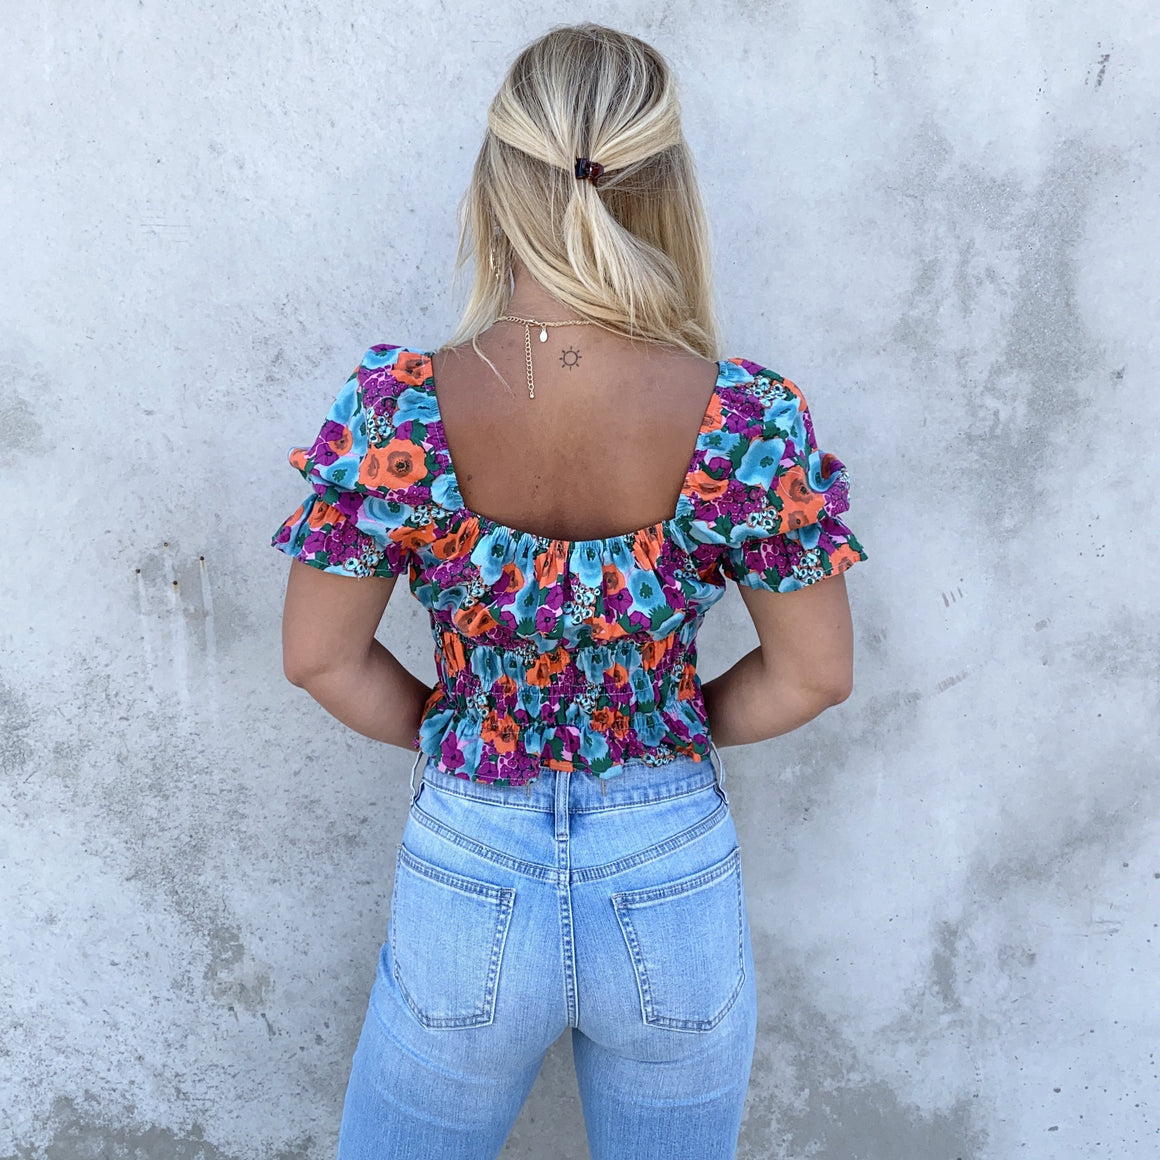 Feel This Way Floral Print Top - Dainty Hooligan